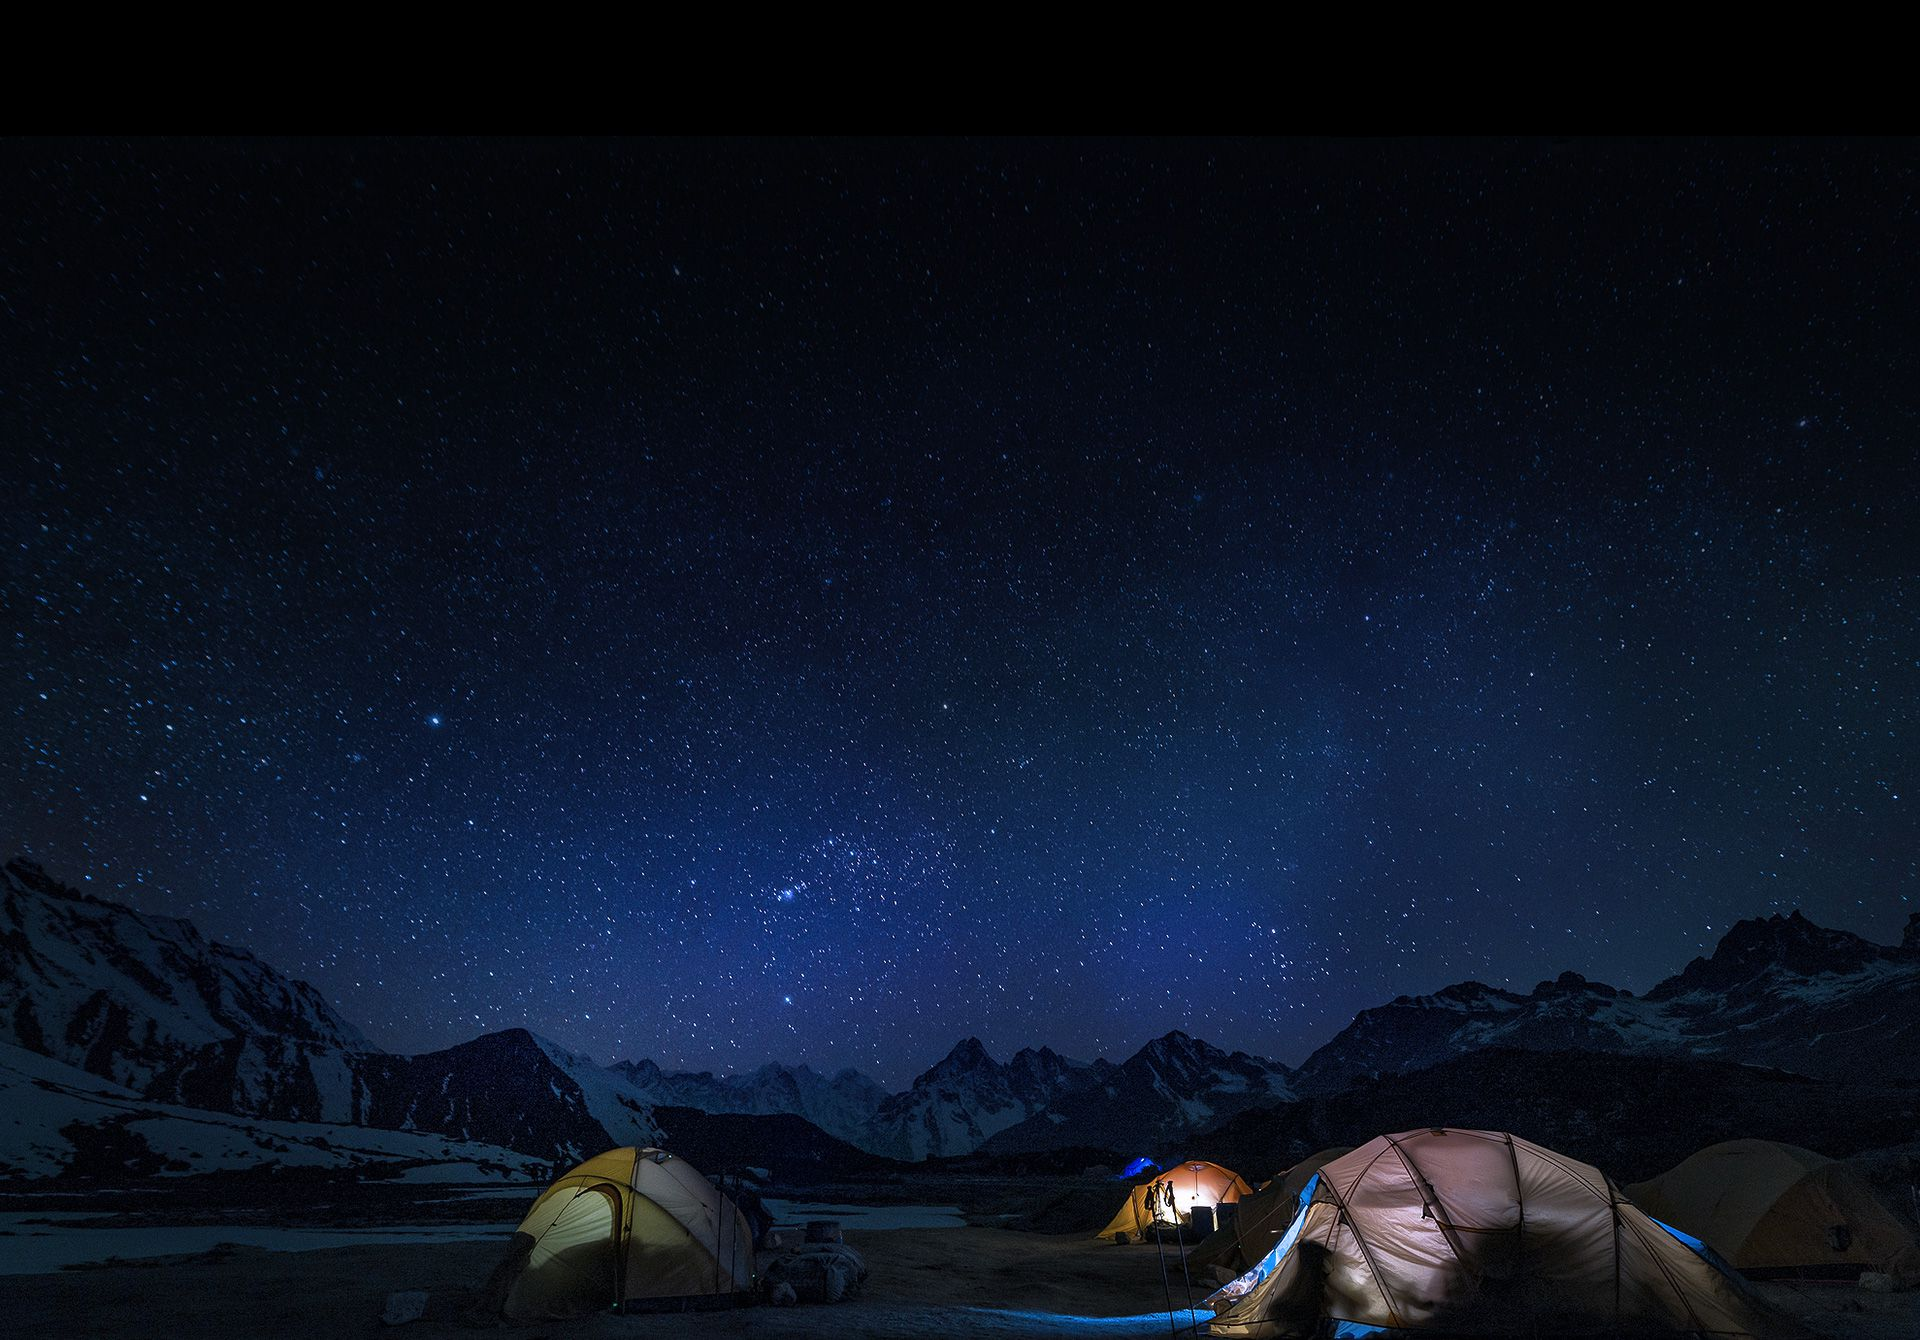 Image behind the Gear 360 (2017) of a campsite at night